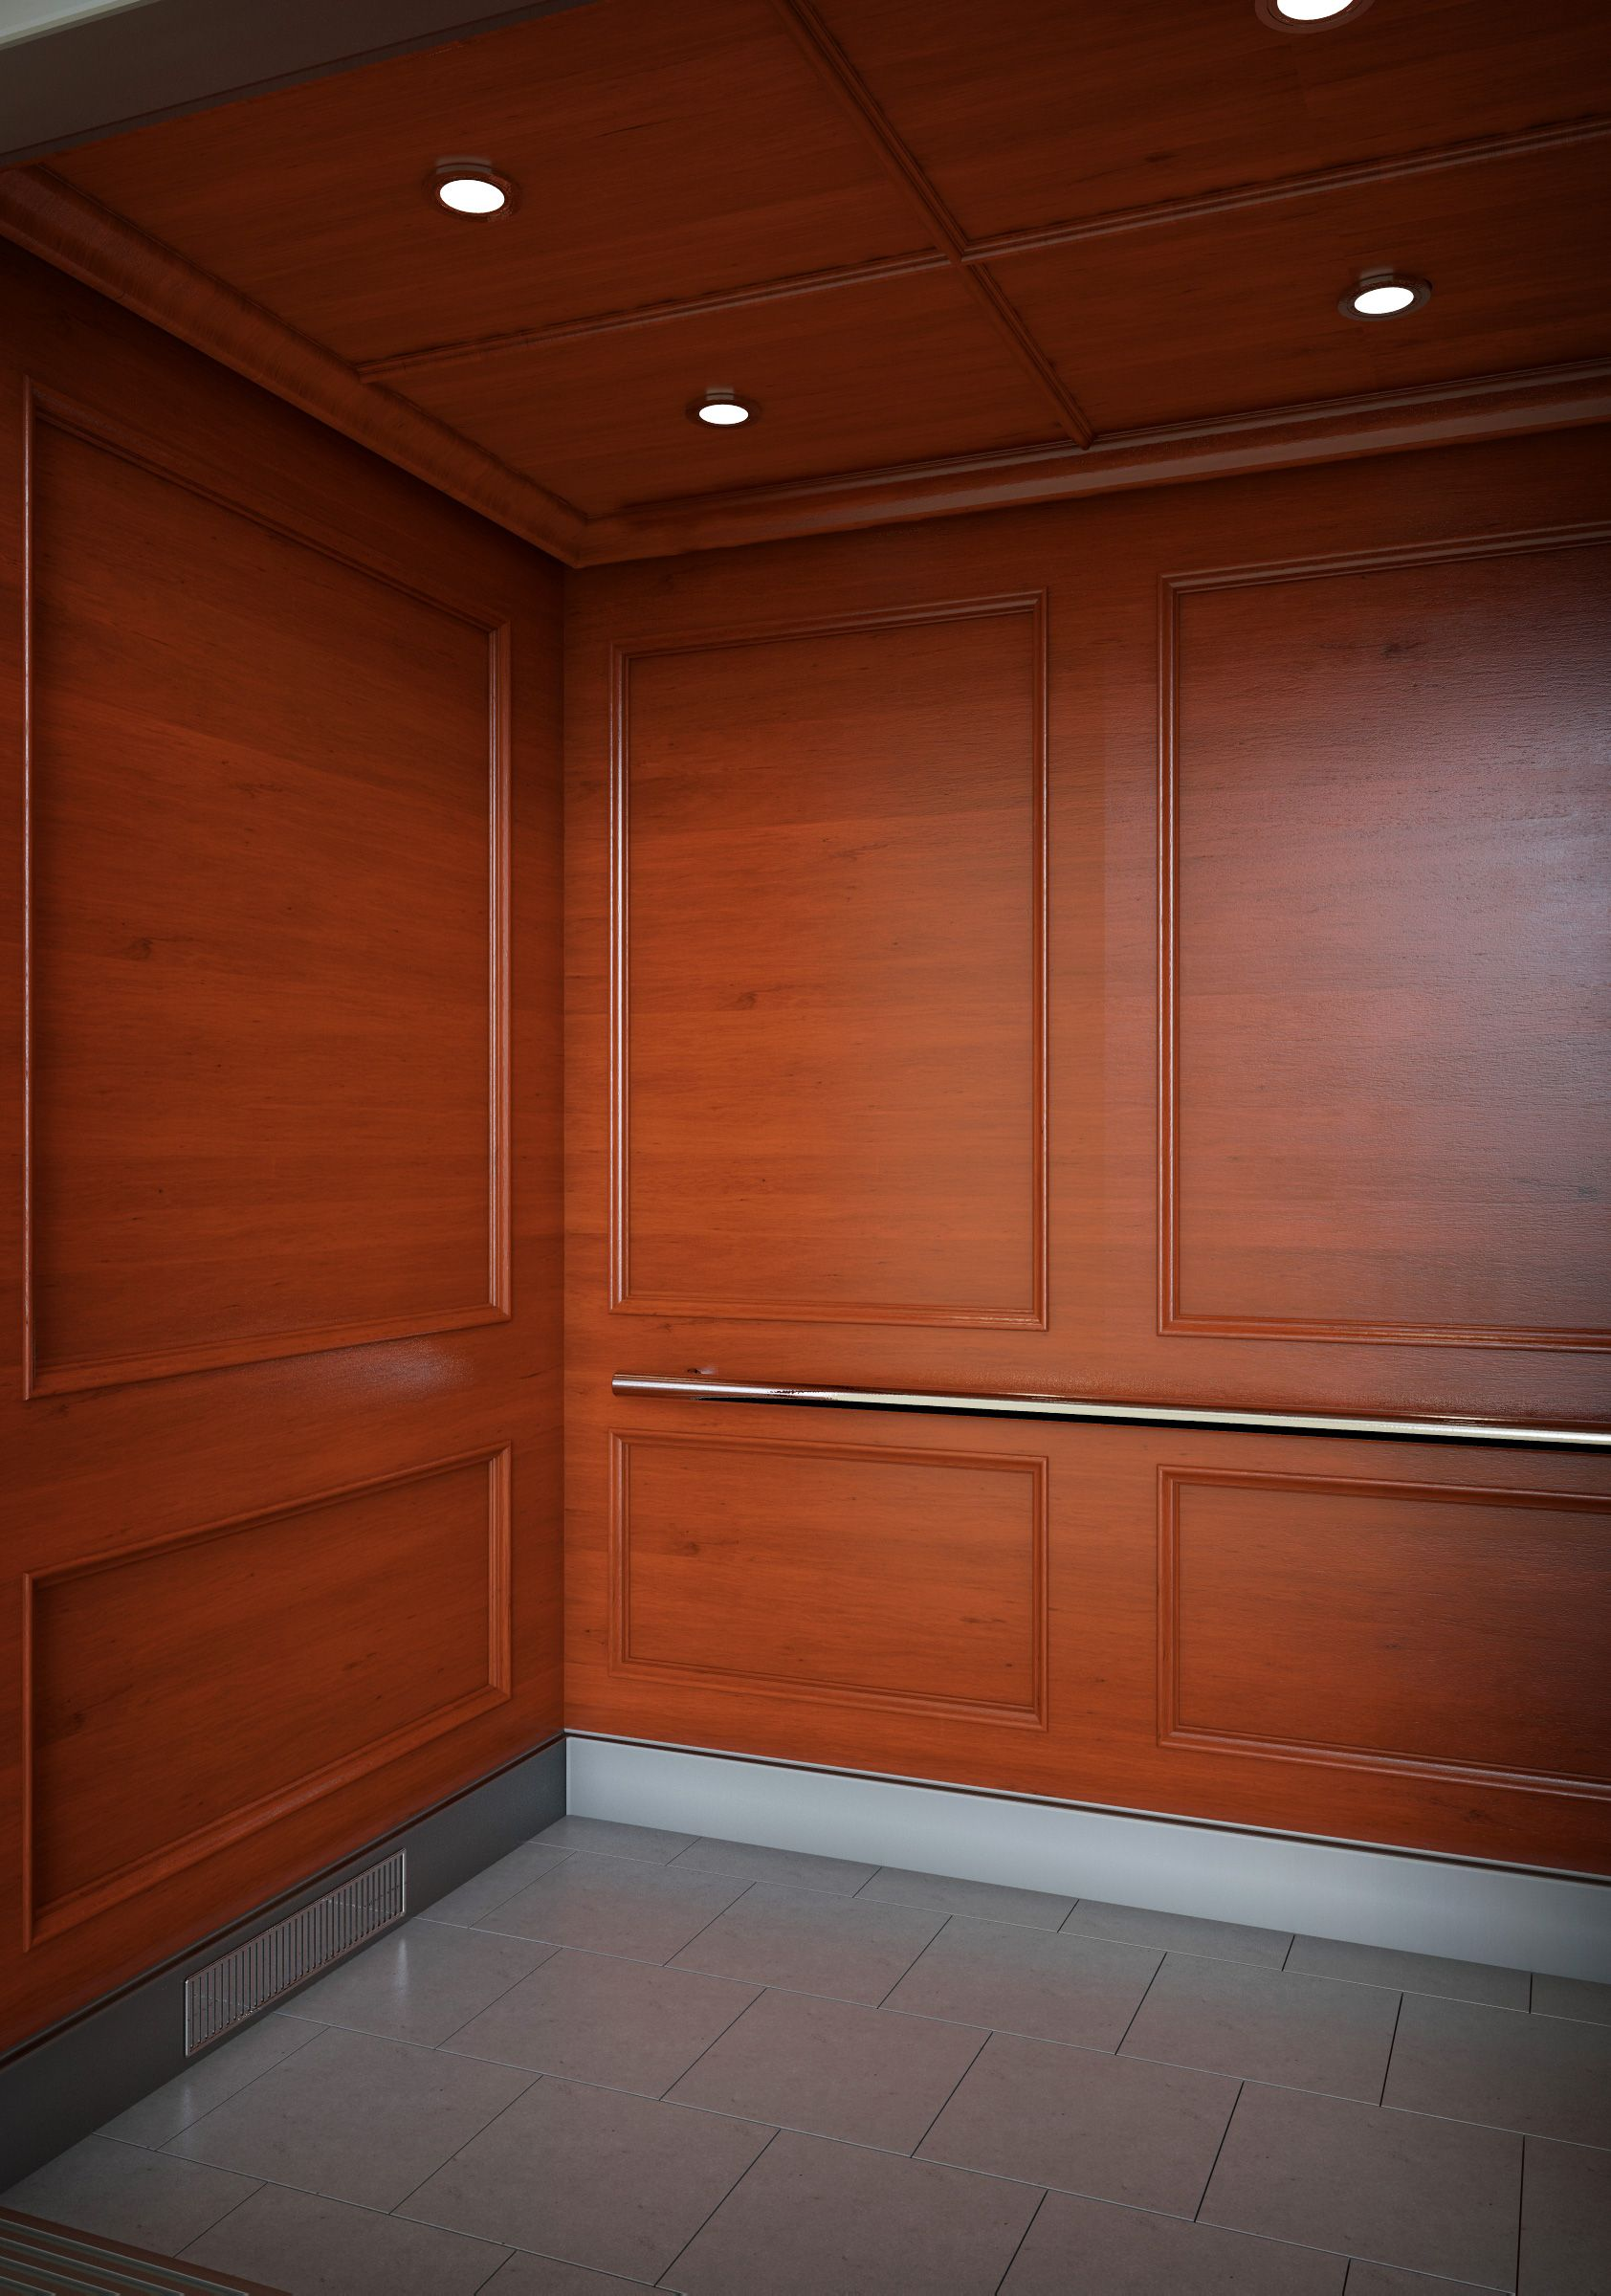 Custom Wood Series M6 By Qcab Elevator Cab Design Pinterest Custom Wood And French